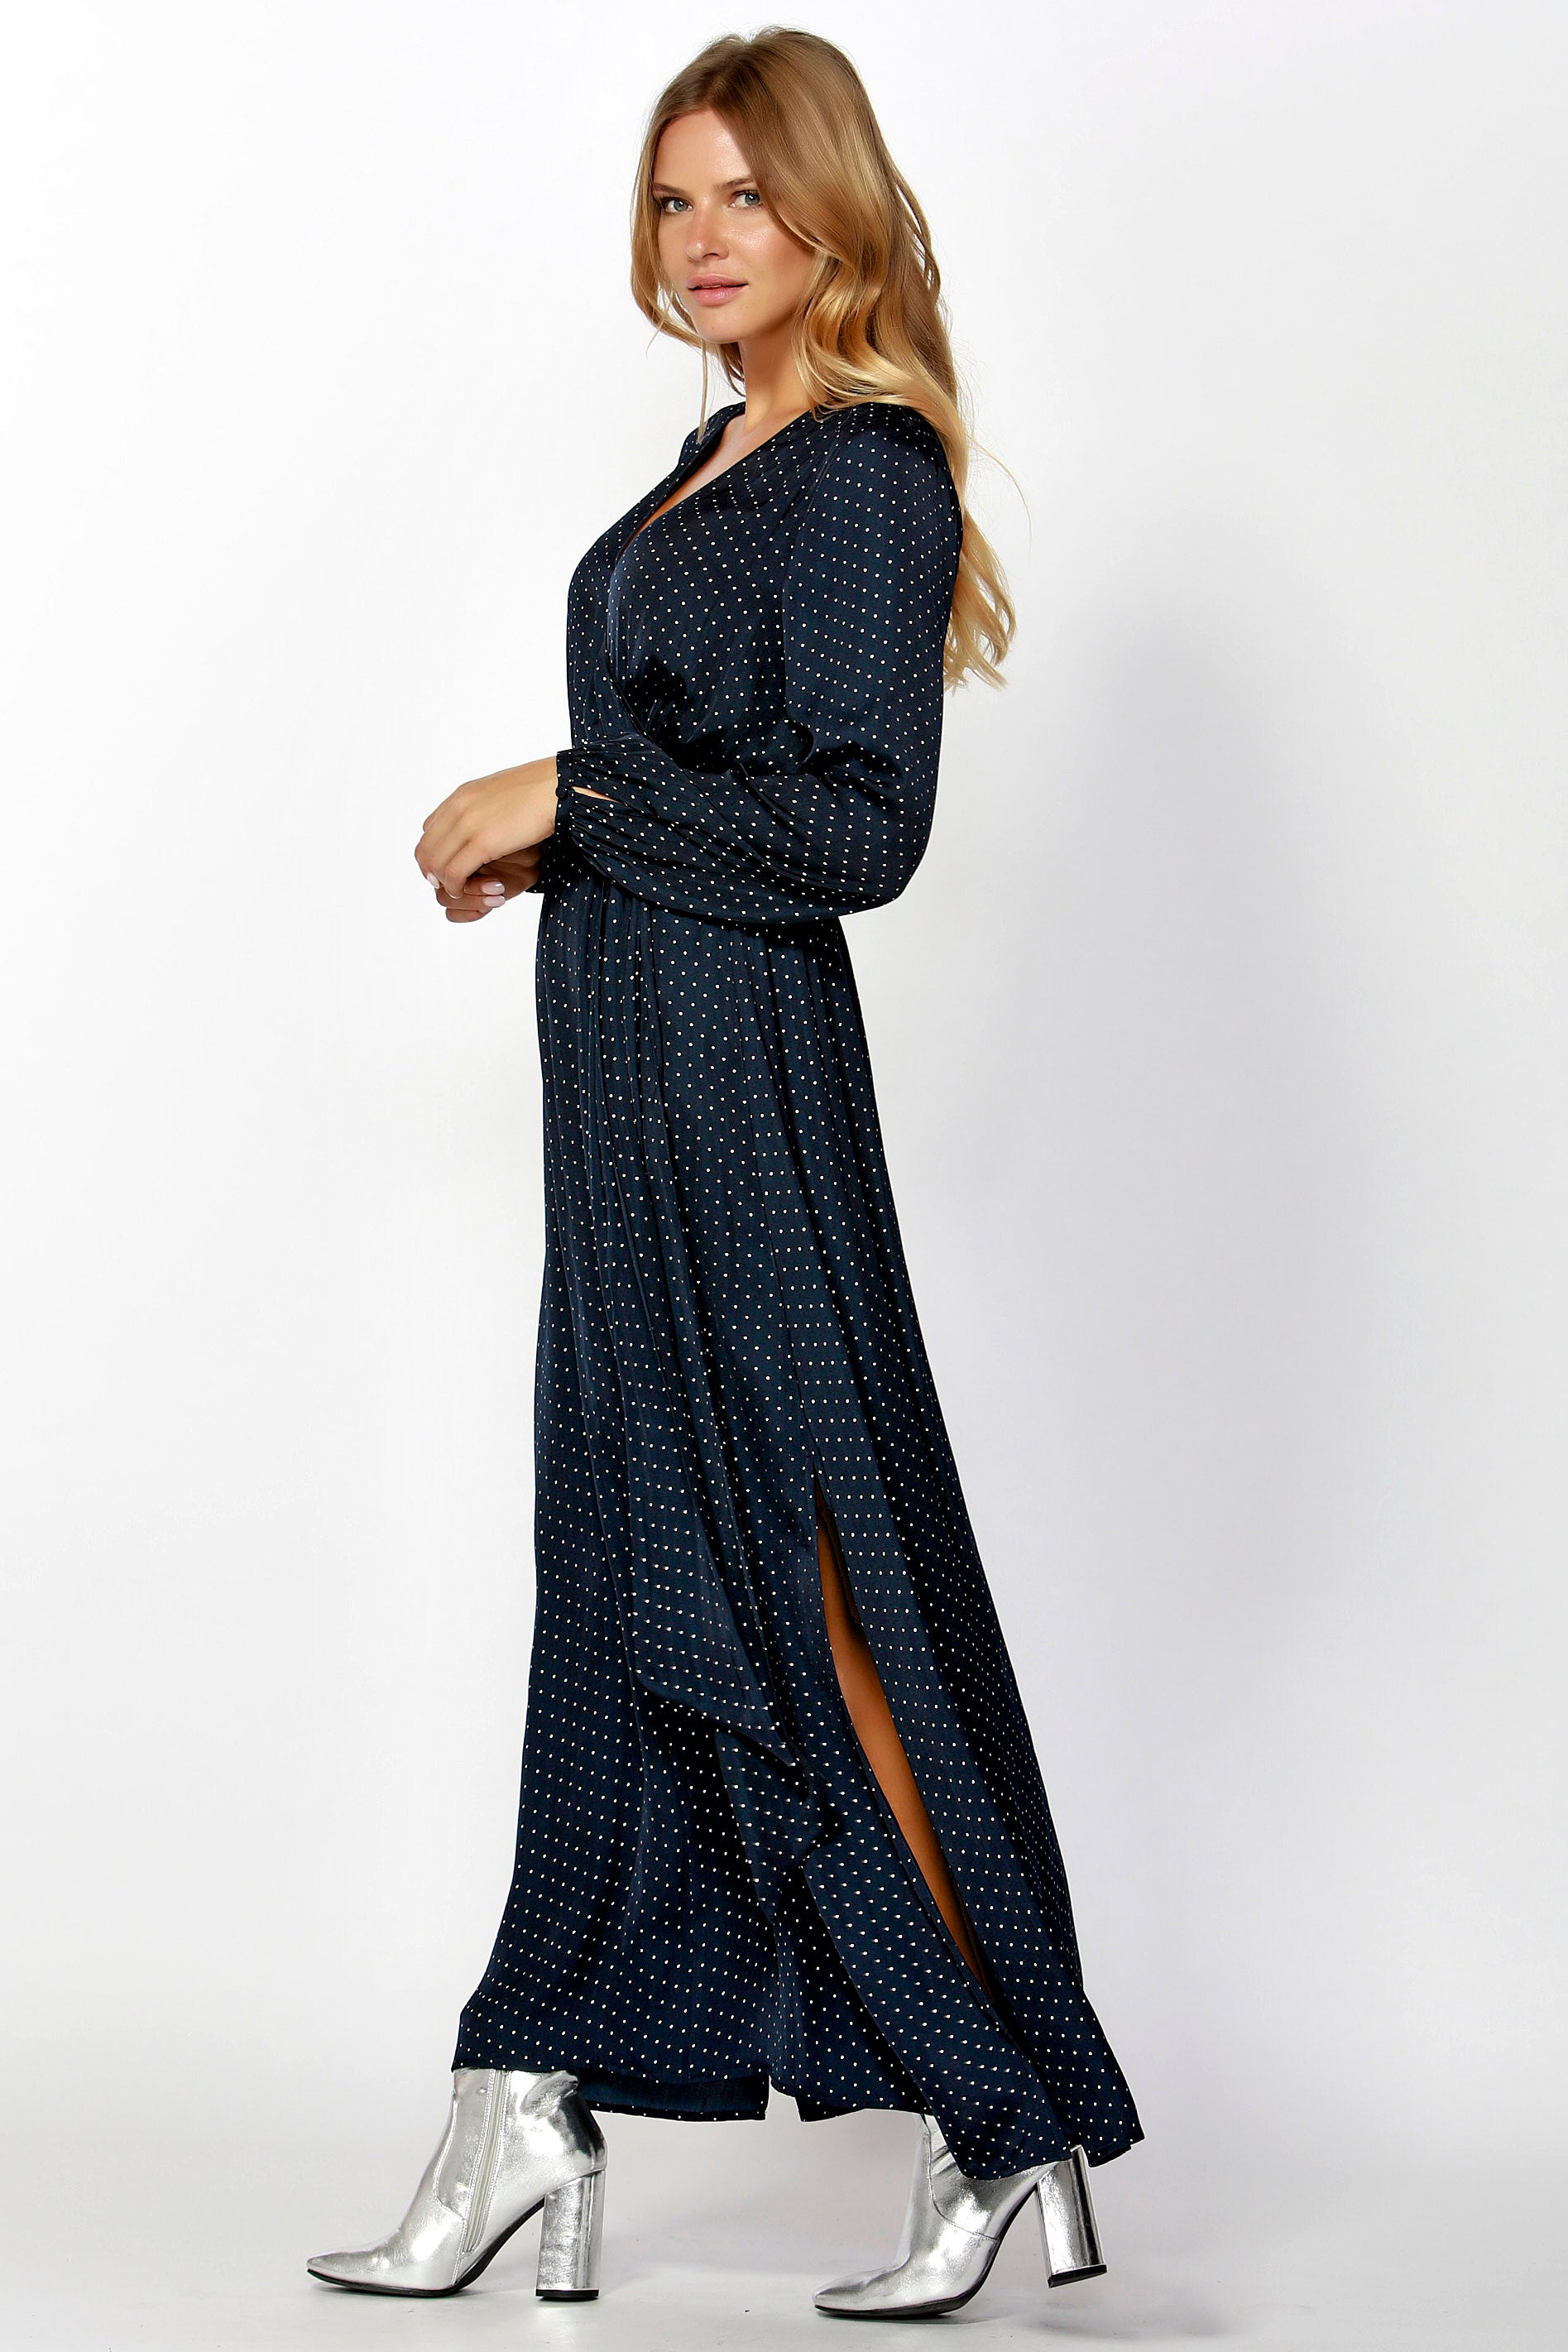 Sass Silver Dot Grecian Maxi Dress in Navy